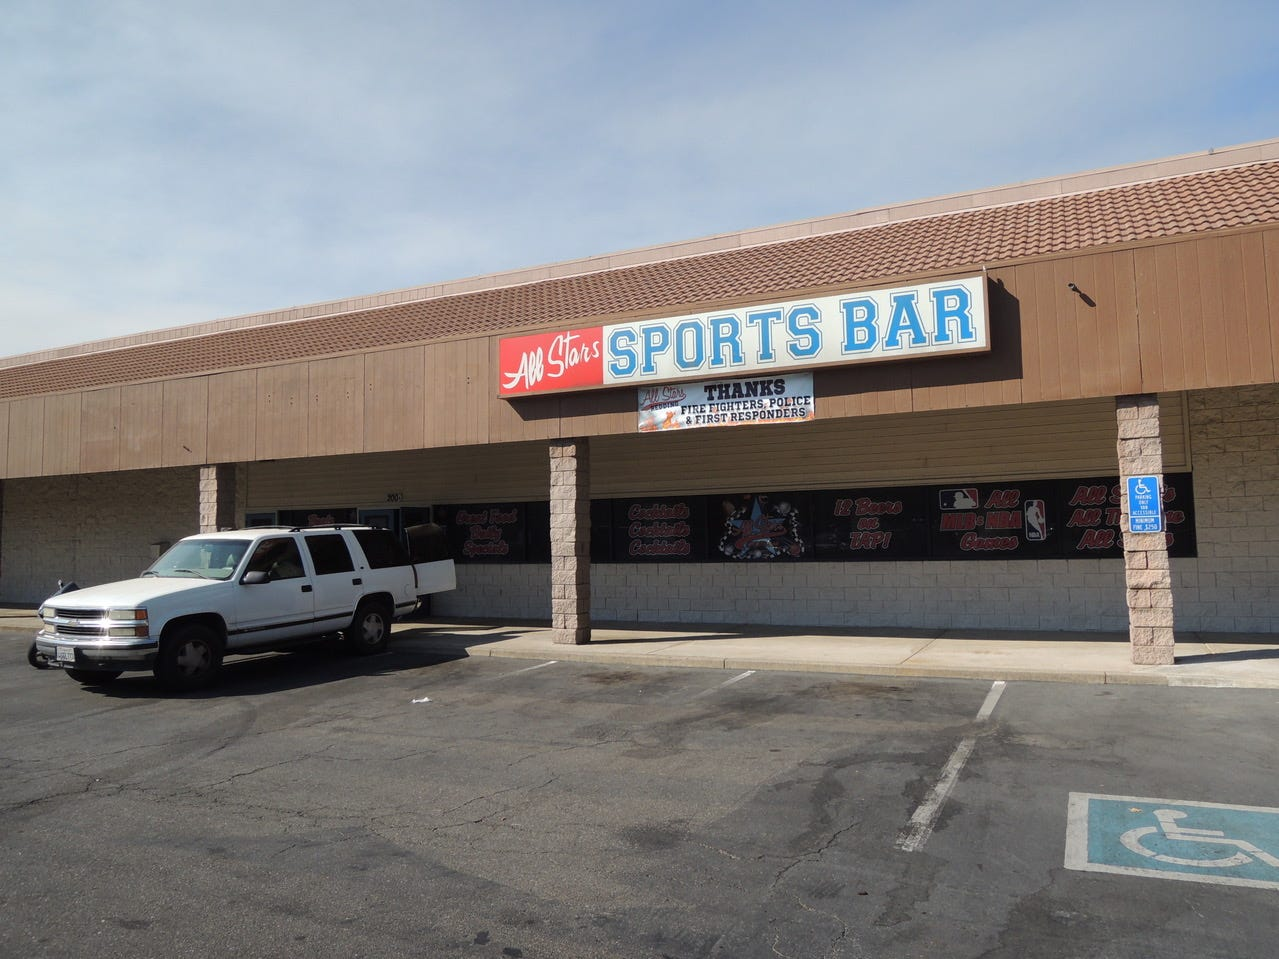 Entrance to All Stars Sports Bar in the Cobblestone Court shopping center at Hartnell and Parkview in east Redding.